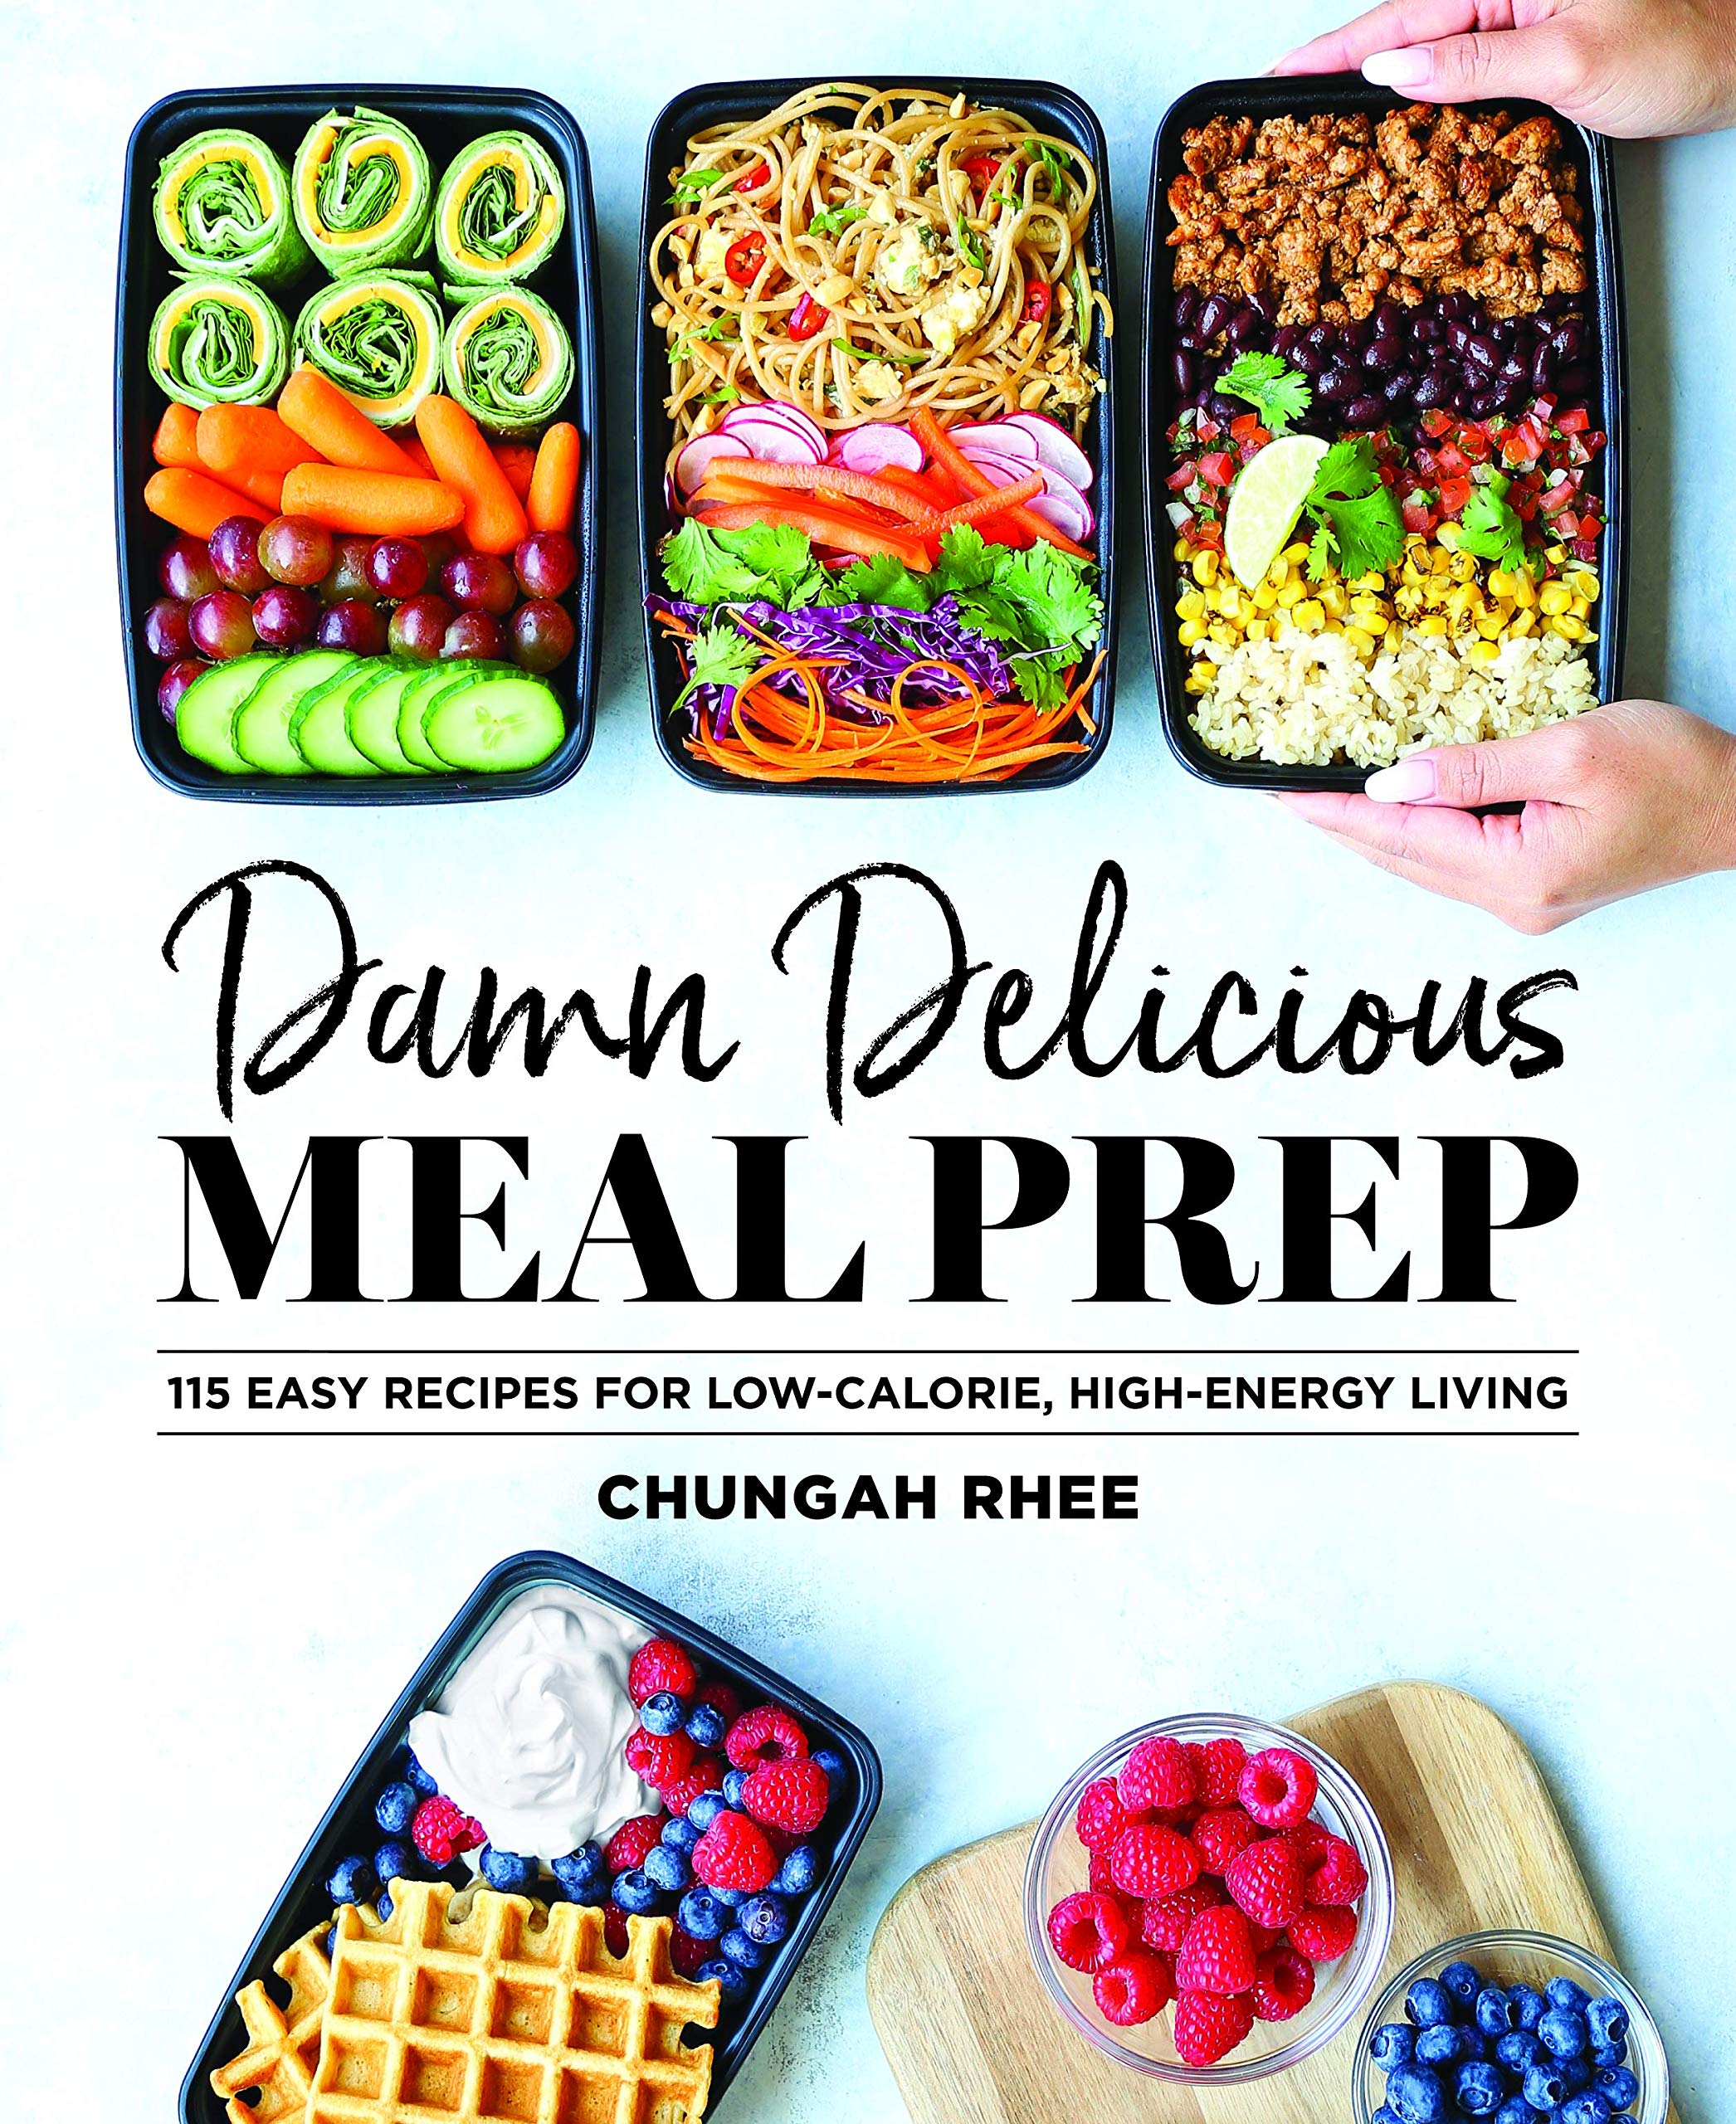 Damn Delicious Meal Prep, by Chungah Rhee